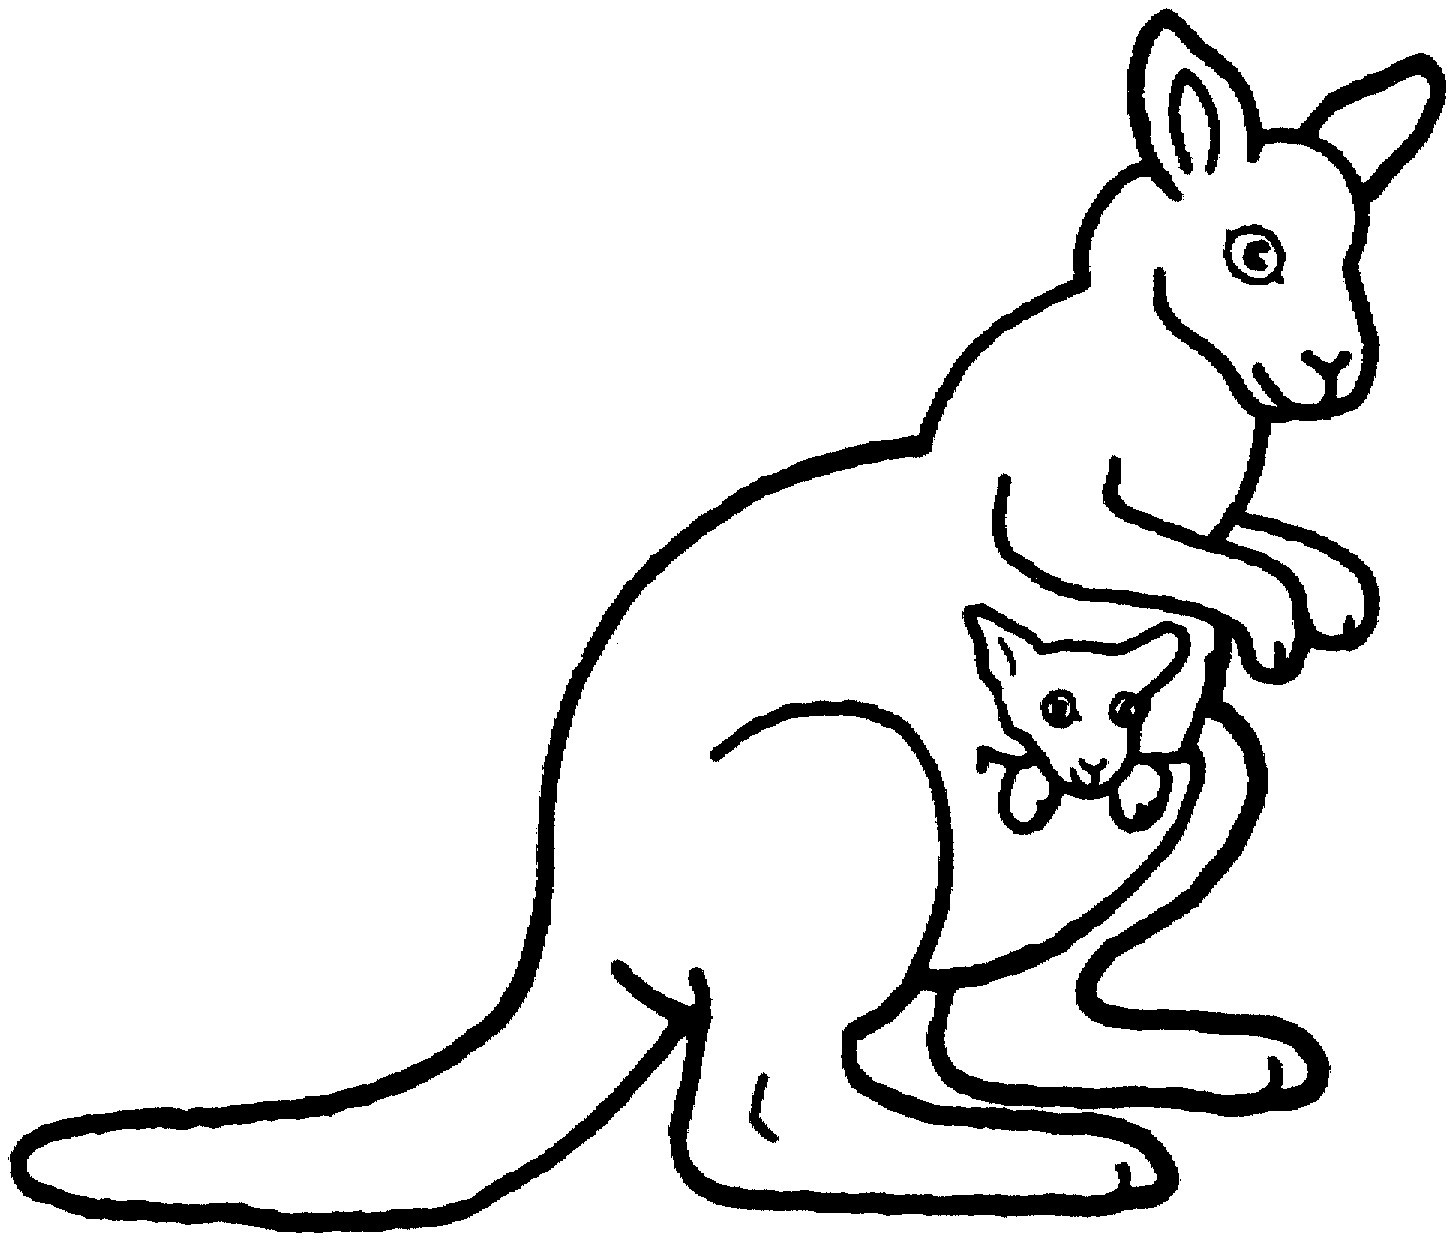 kangroo coloring pages - photo#5